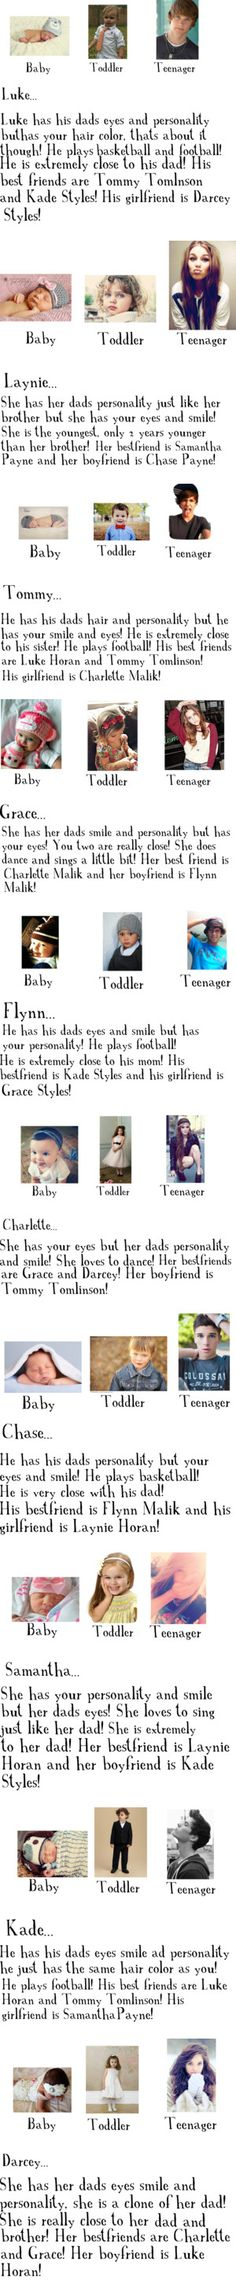 """Your kids with One Direction!!"" by jelec on Polyvore we have awesome kids and it's cool how they are dating one another lol"